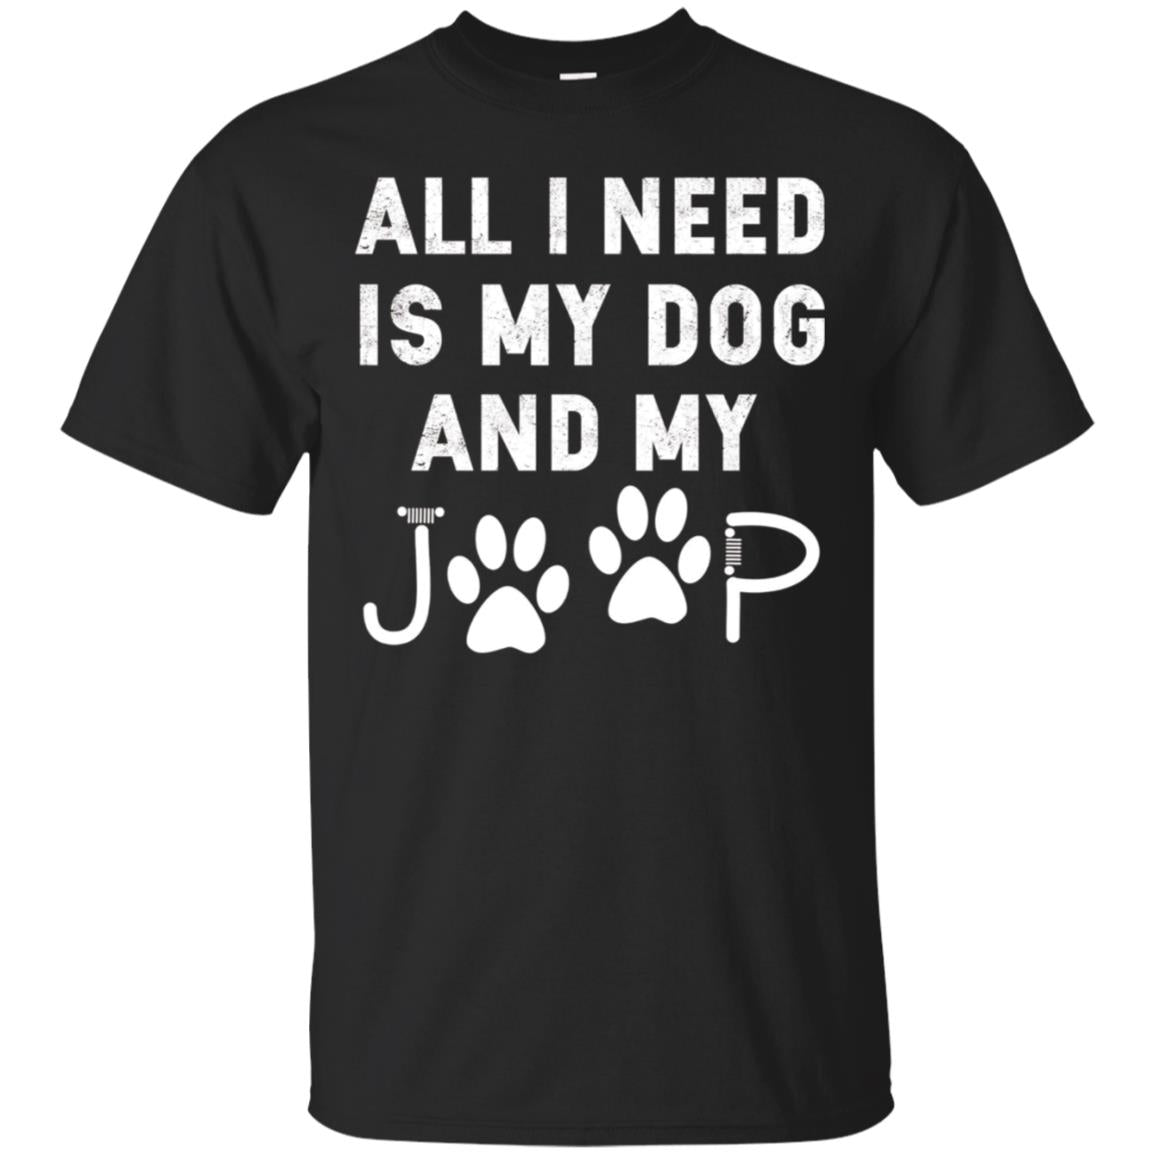 All I need is my dog and my jeep funny dog lover Tee Shirt